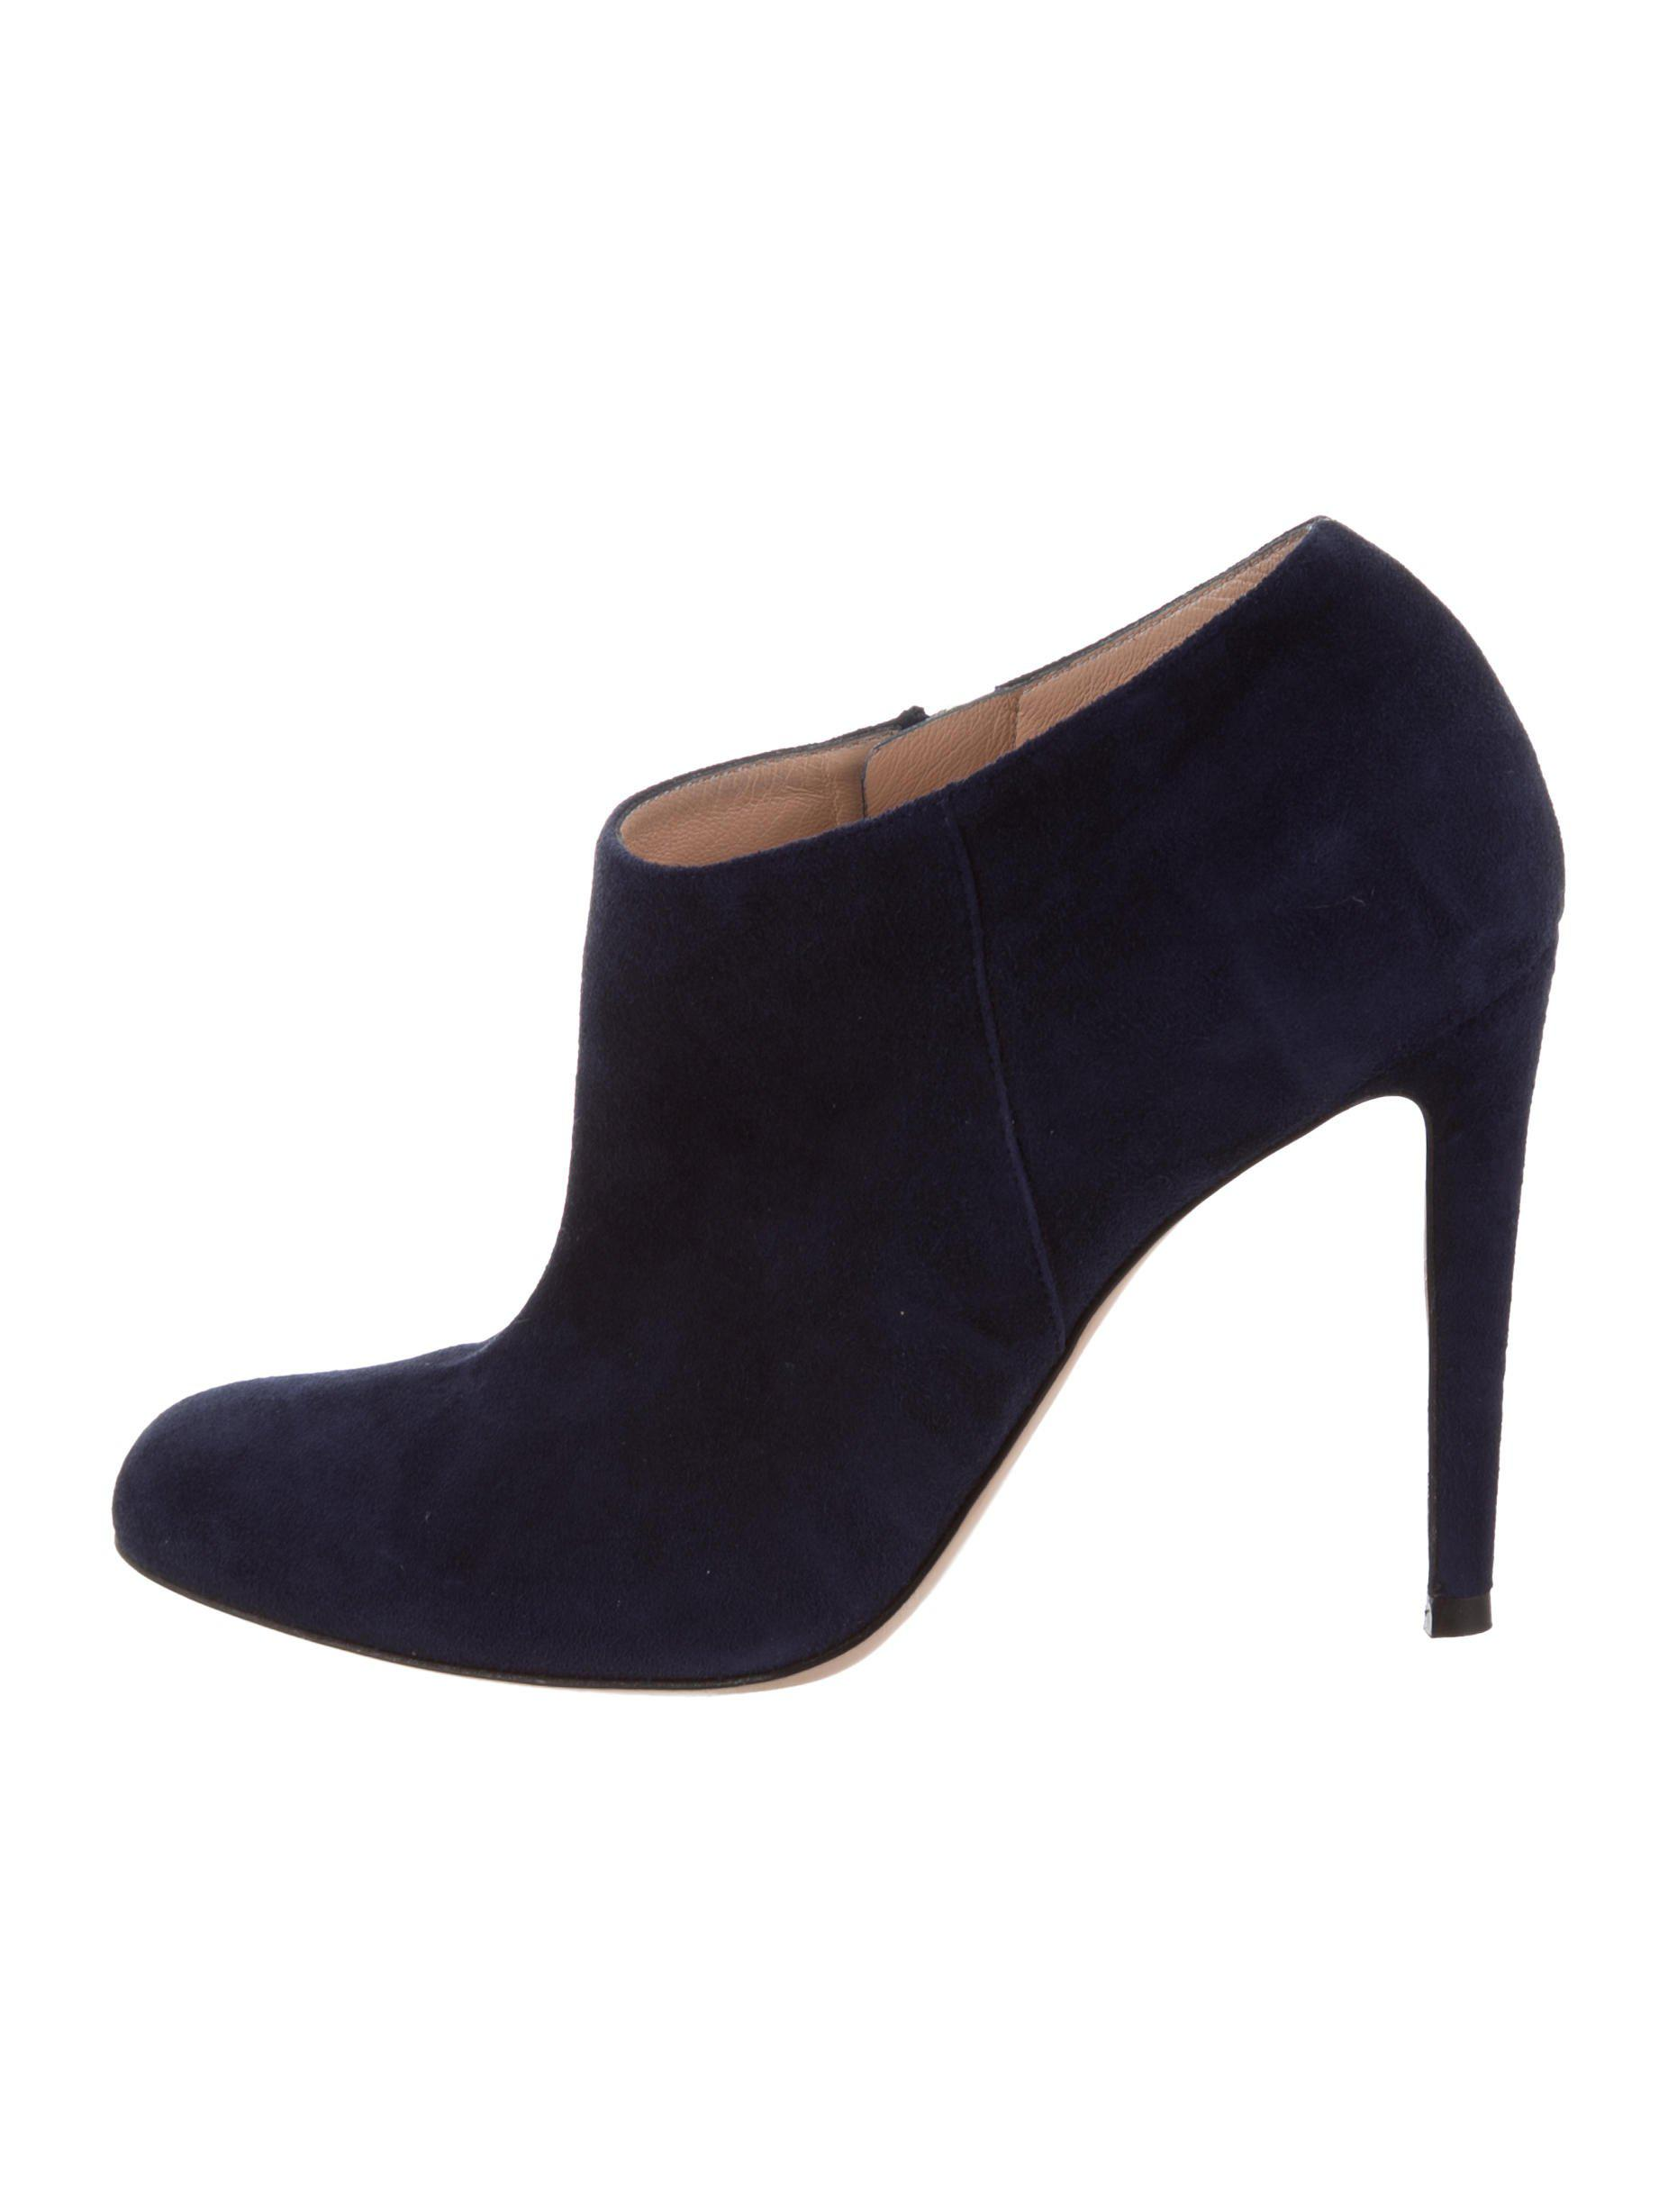 Gianvito Rossi Suede Round-Toe Booties clearance explore outlet with paypal nL0CZr27